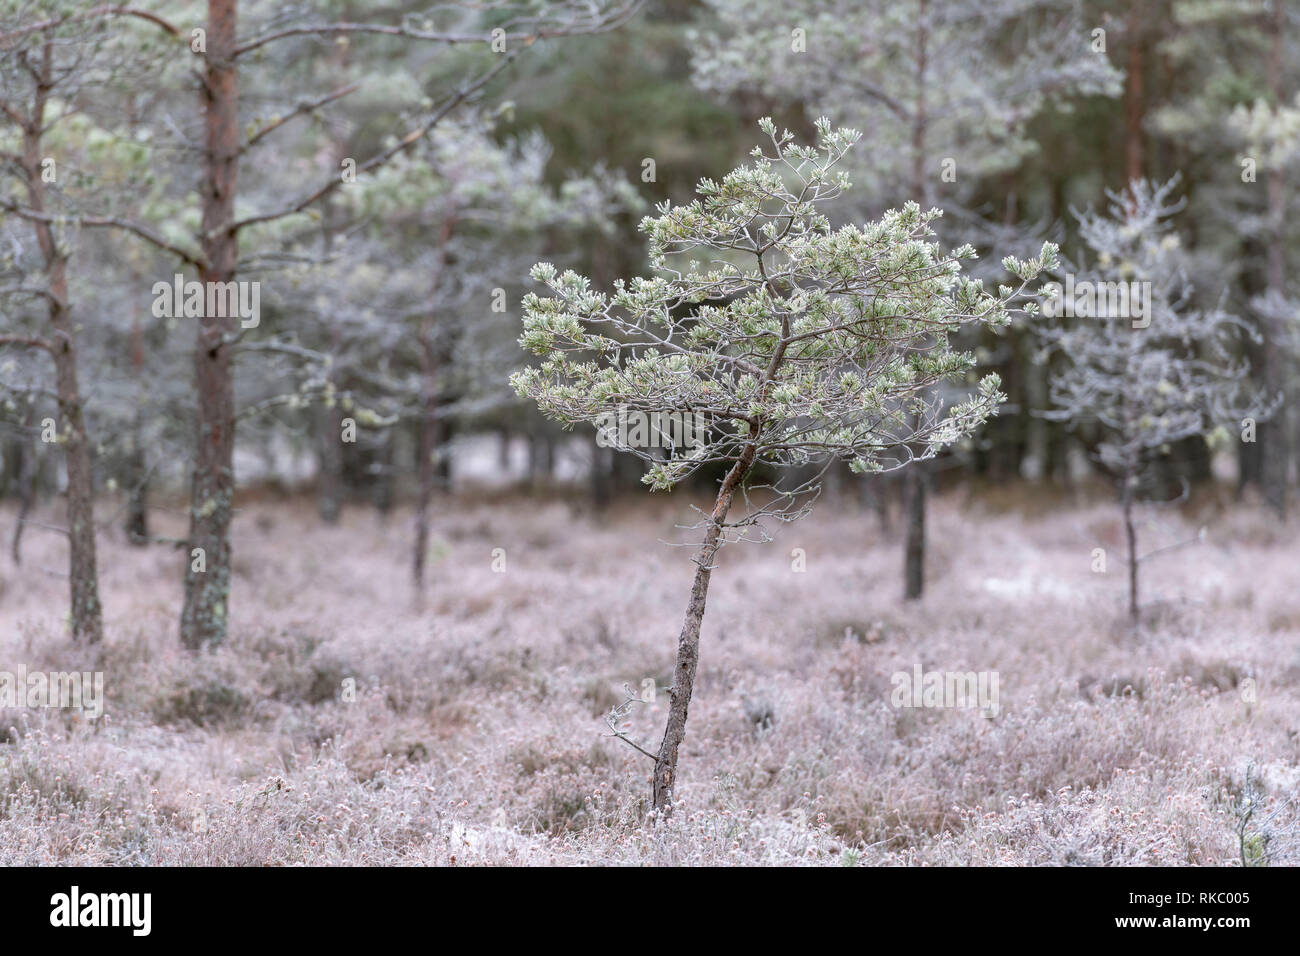 A Scots Pine Sapling (Pinus Sylvestris) in a Forest Clearing in Winter - Stock Image